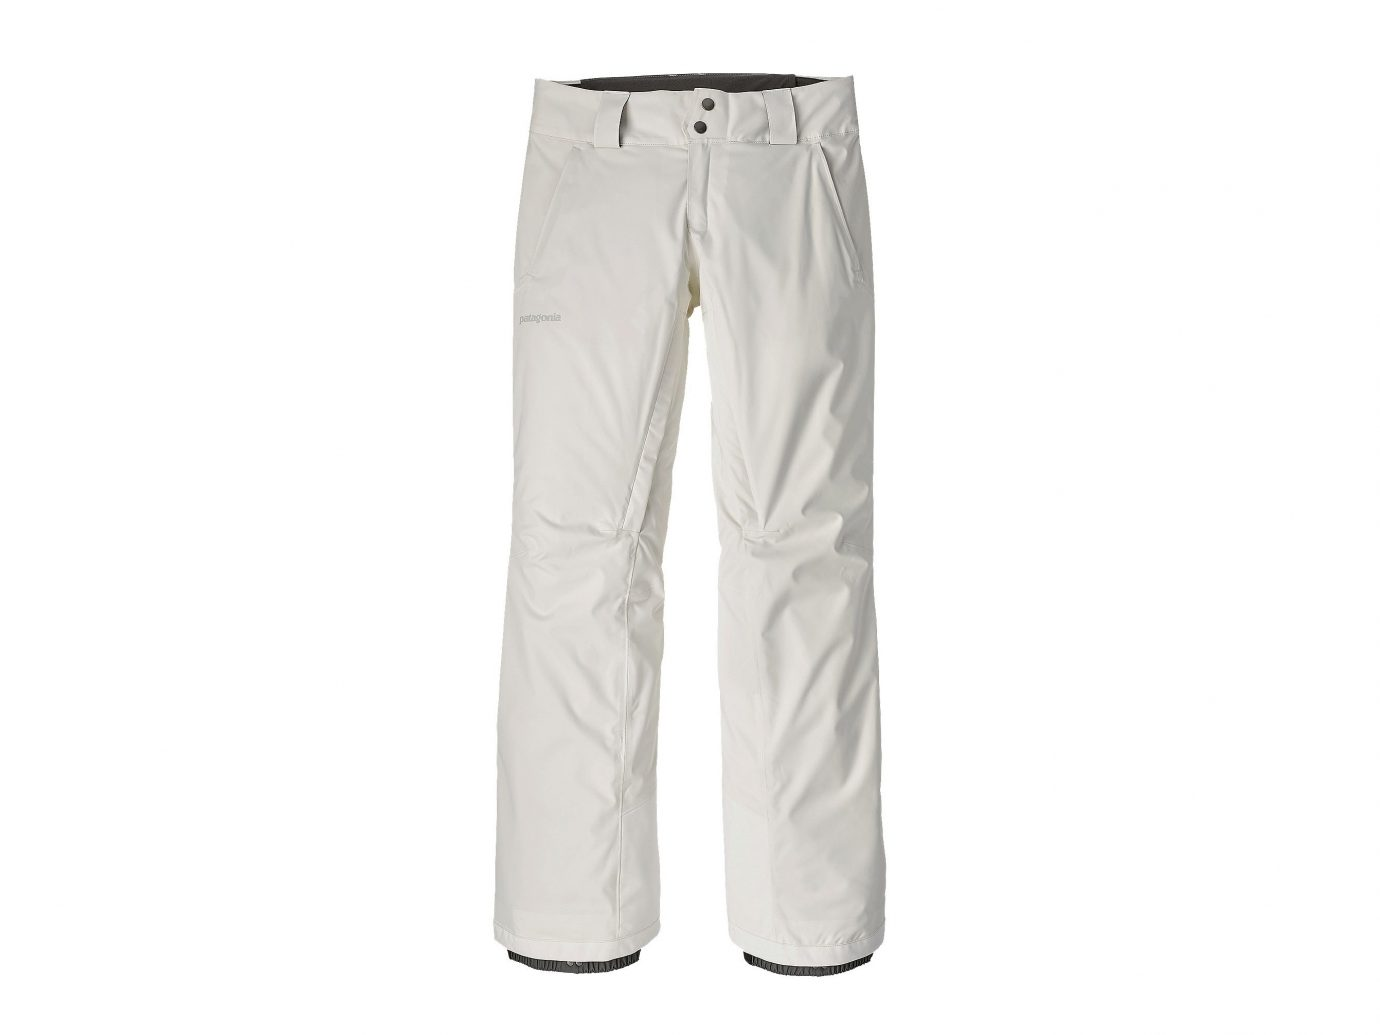 Patagonia Insulated Snowbelle Pants - Women's